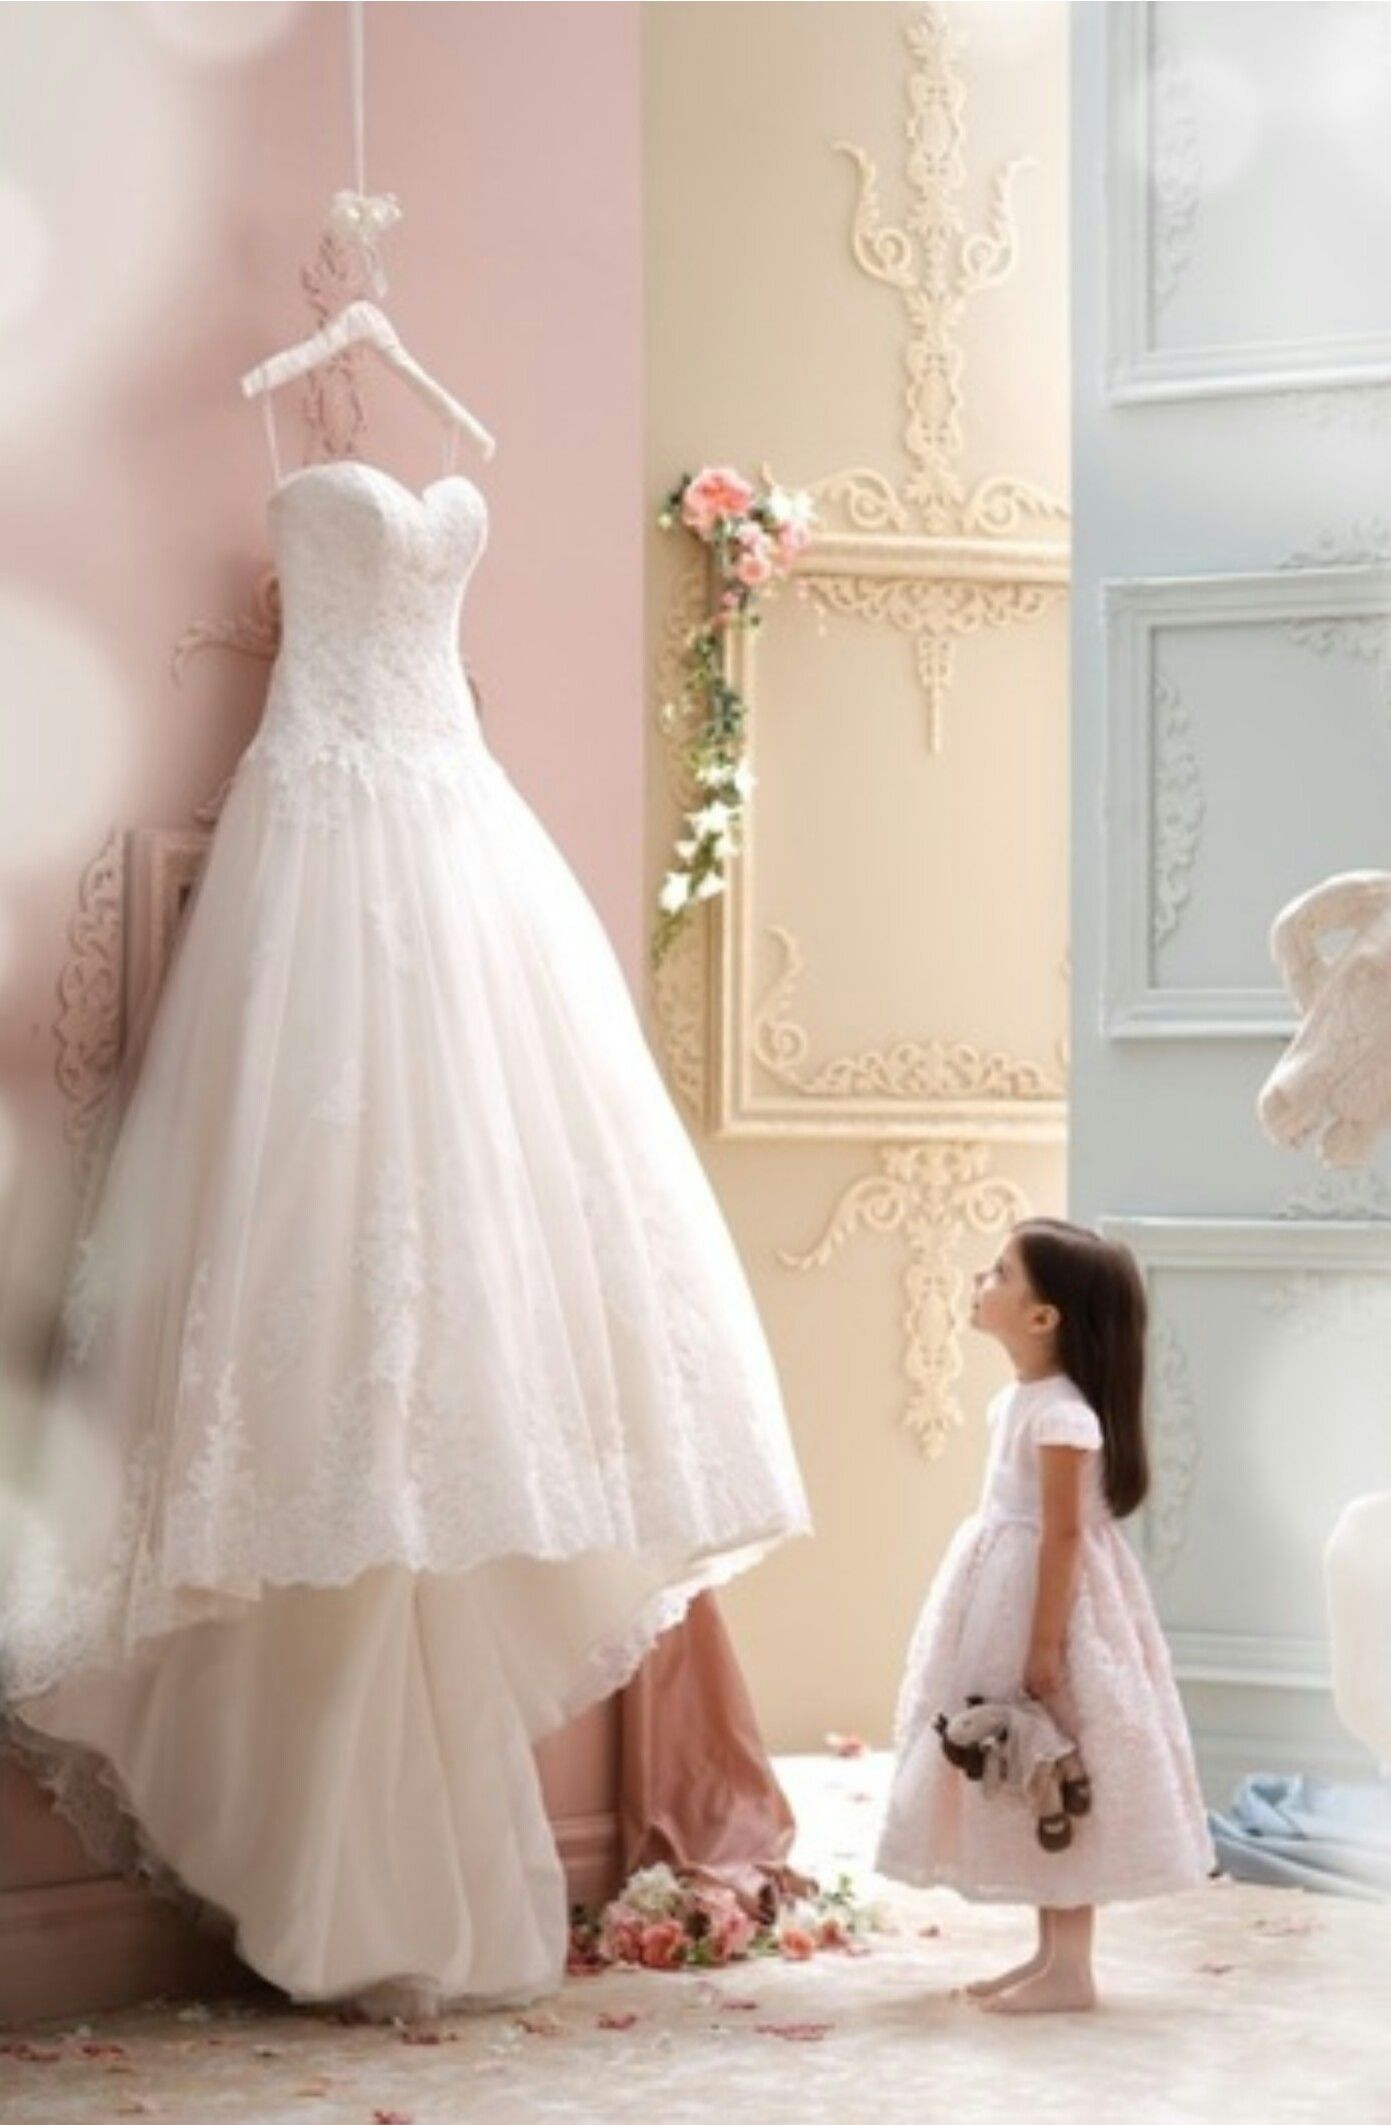 The perfect picture brides dress and the flower girl wedding